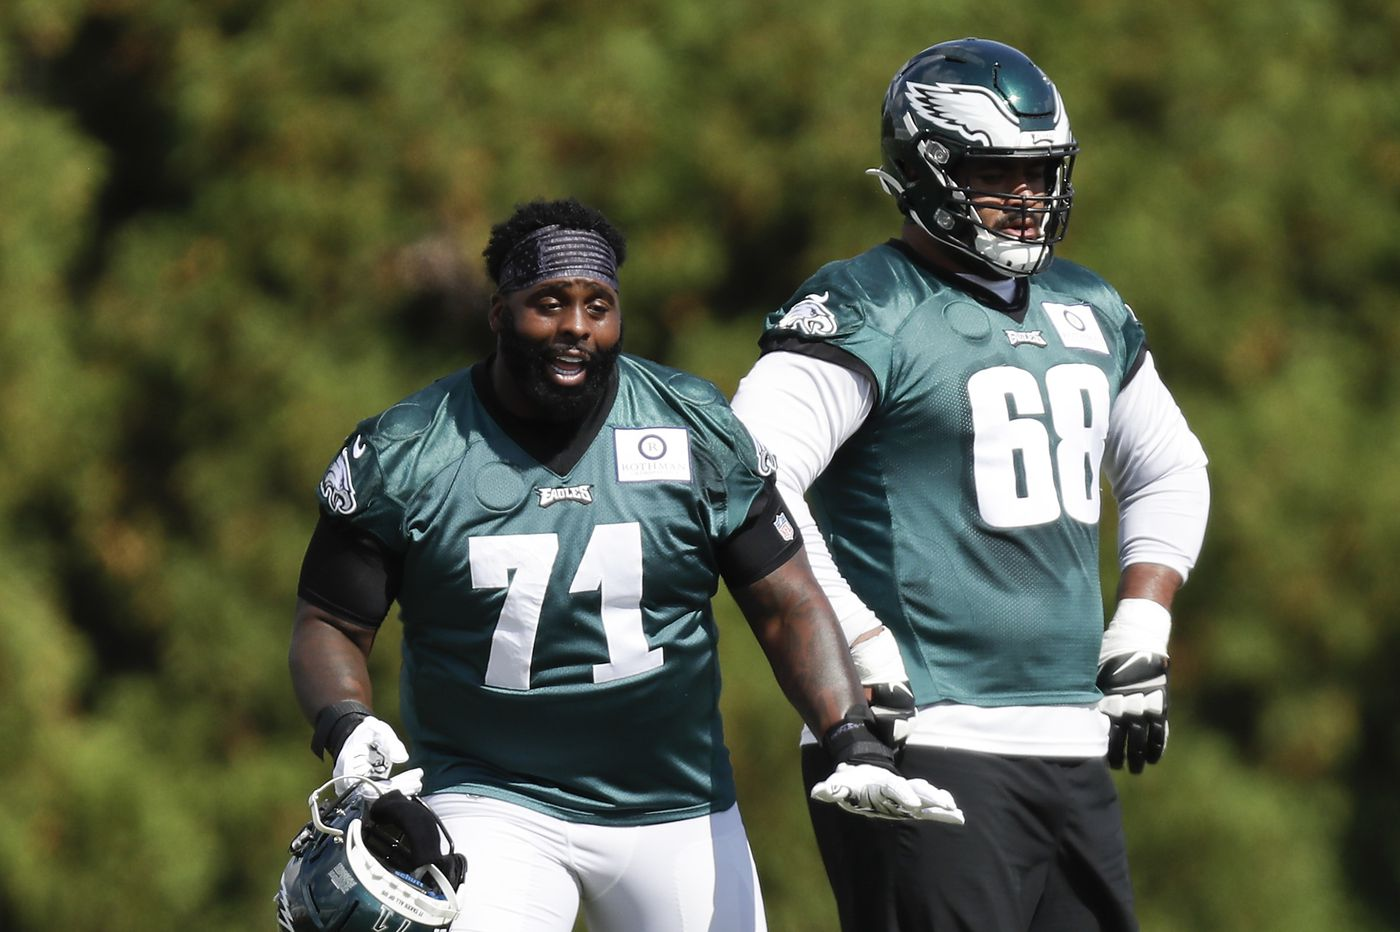 Eagles moving Jason Peters to right guard, putting Jordan Mailata at left tackle, per reports